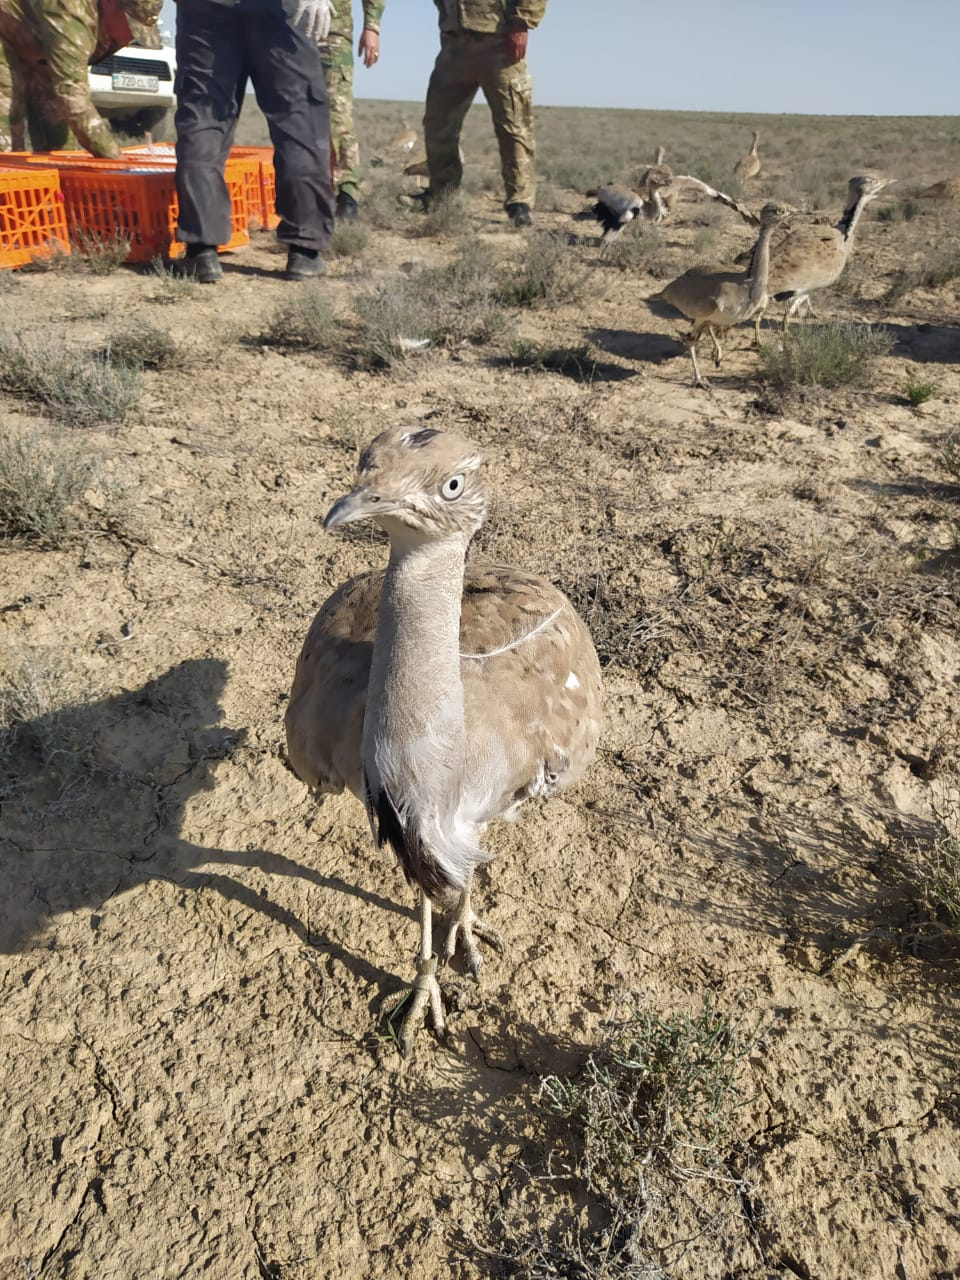 Release of animals and birds into the natural environment